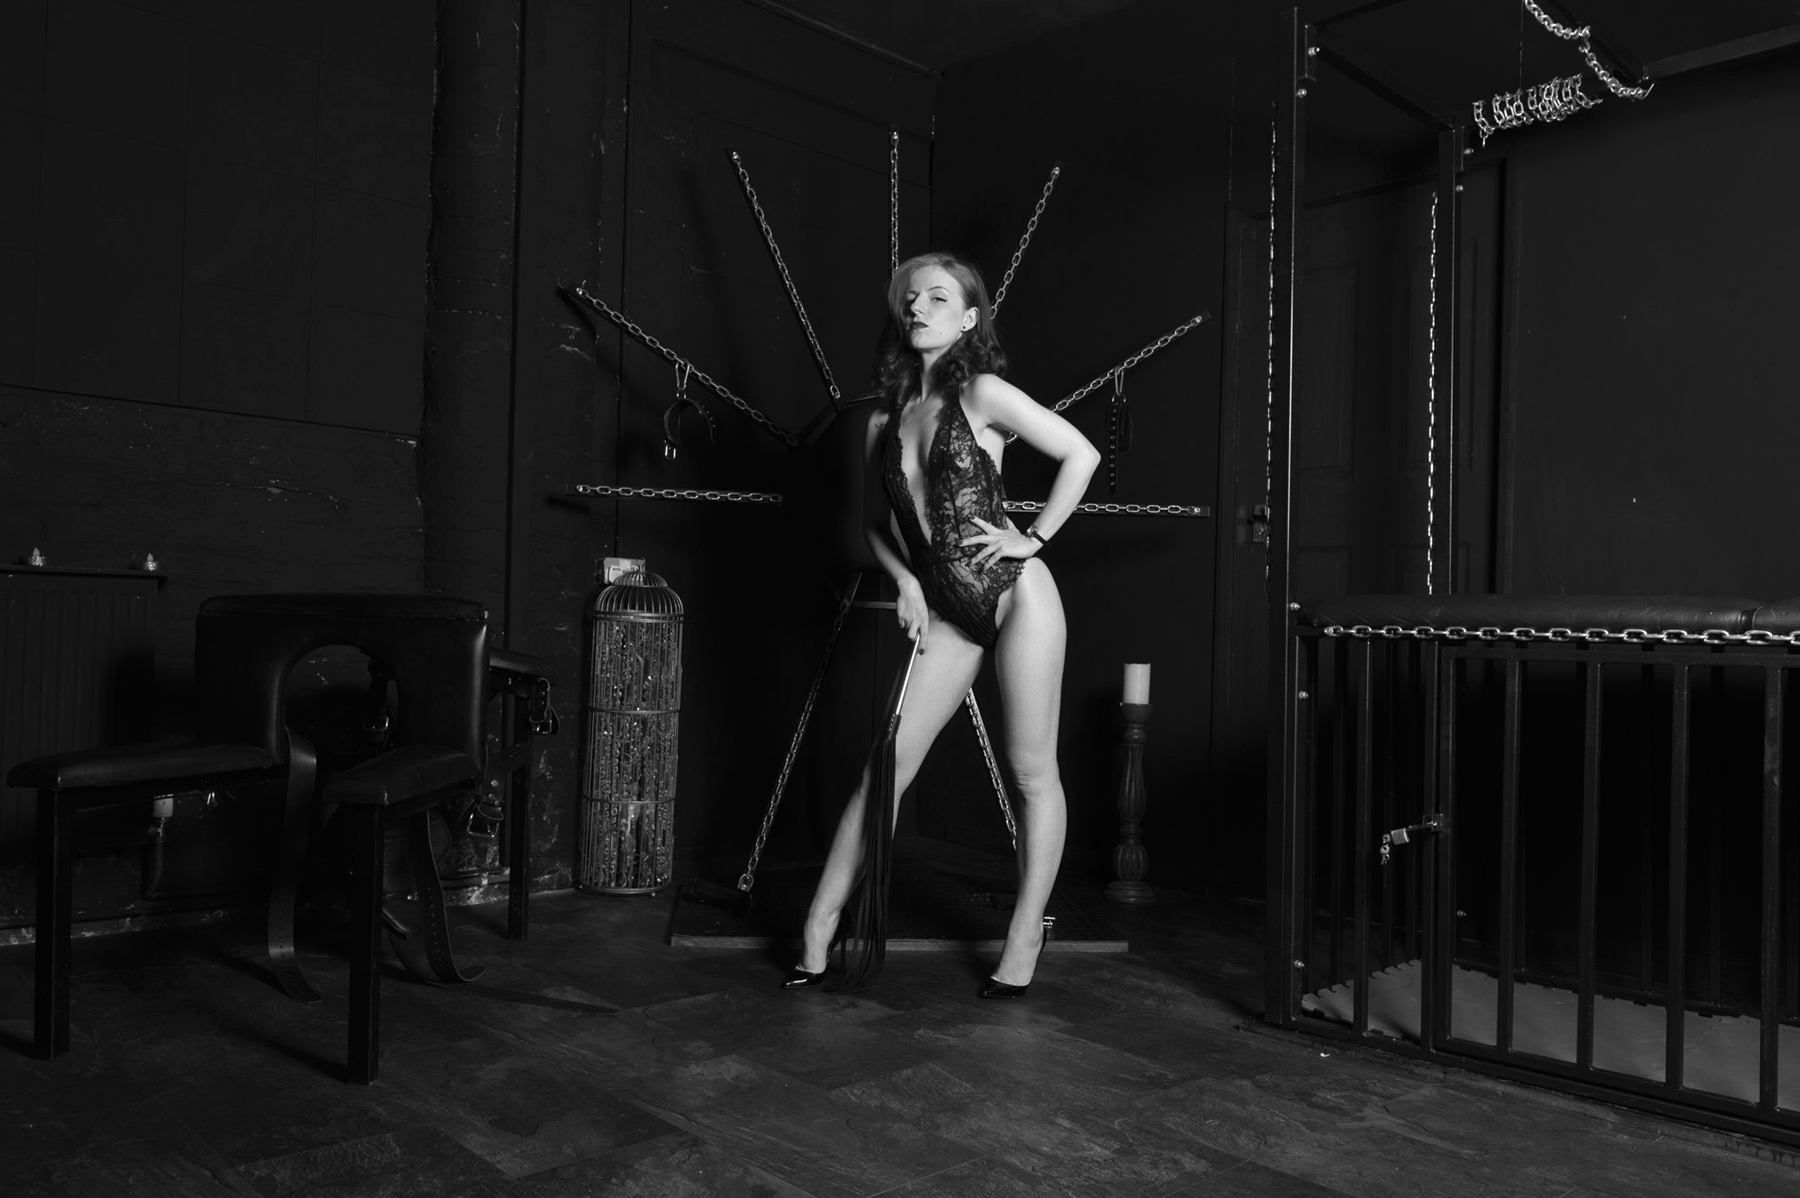 You have to be locked up in chastity now femdom dominatrix